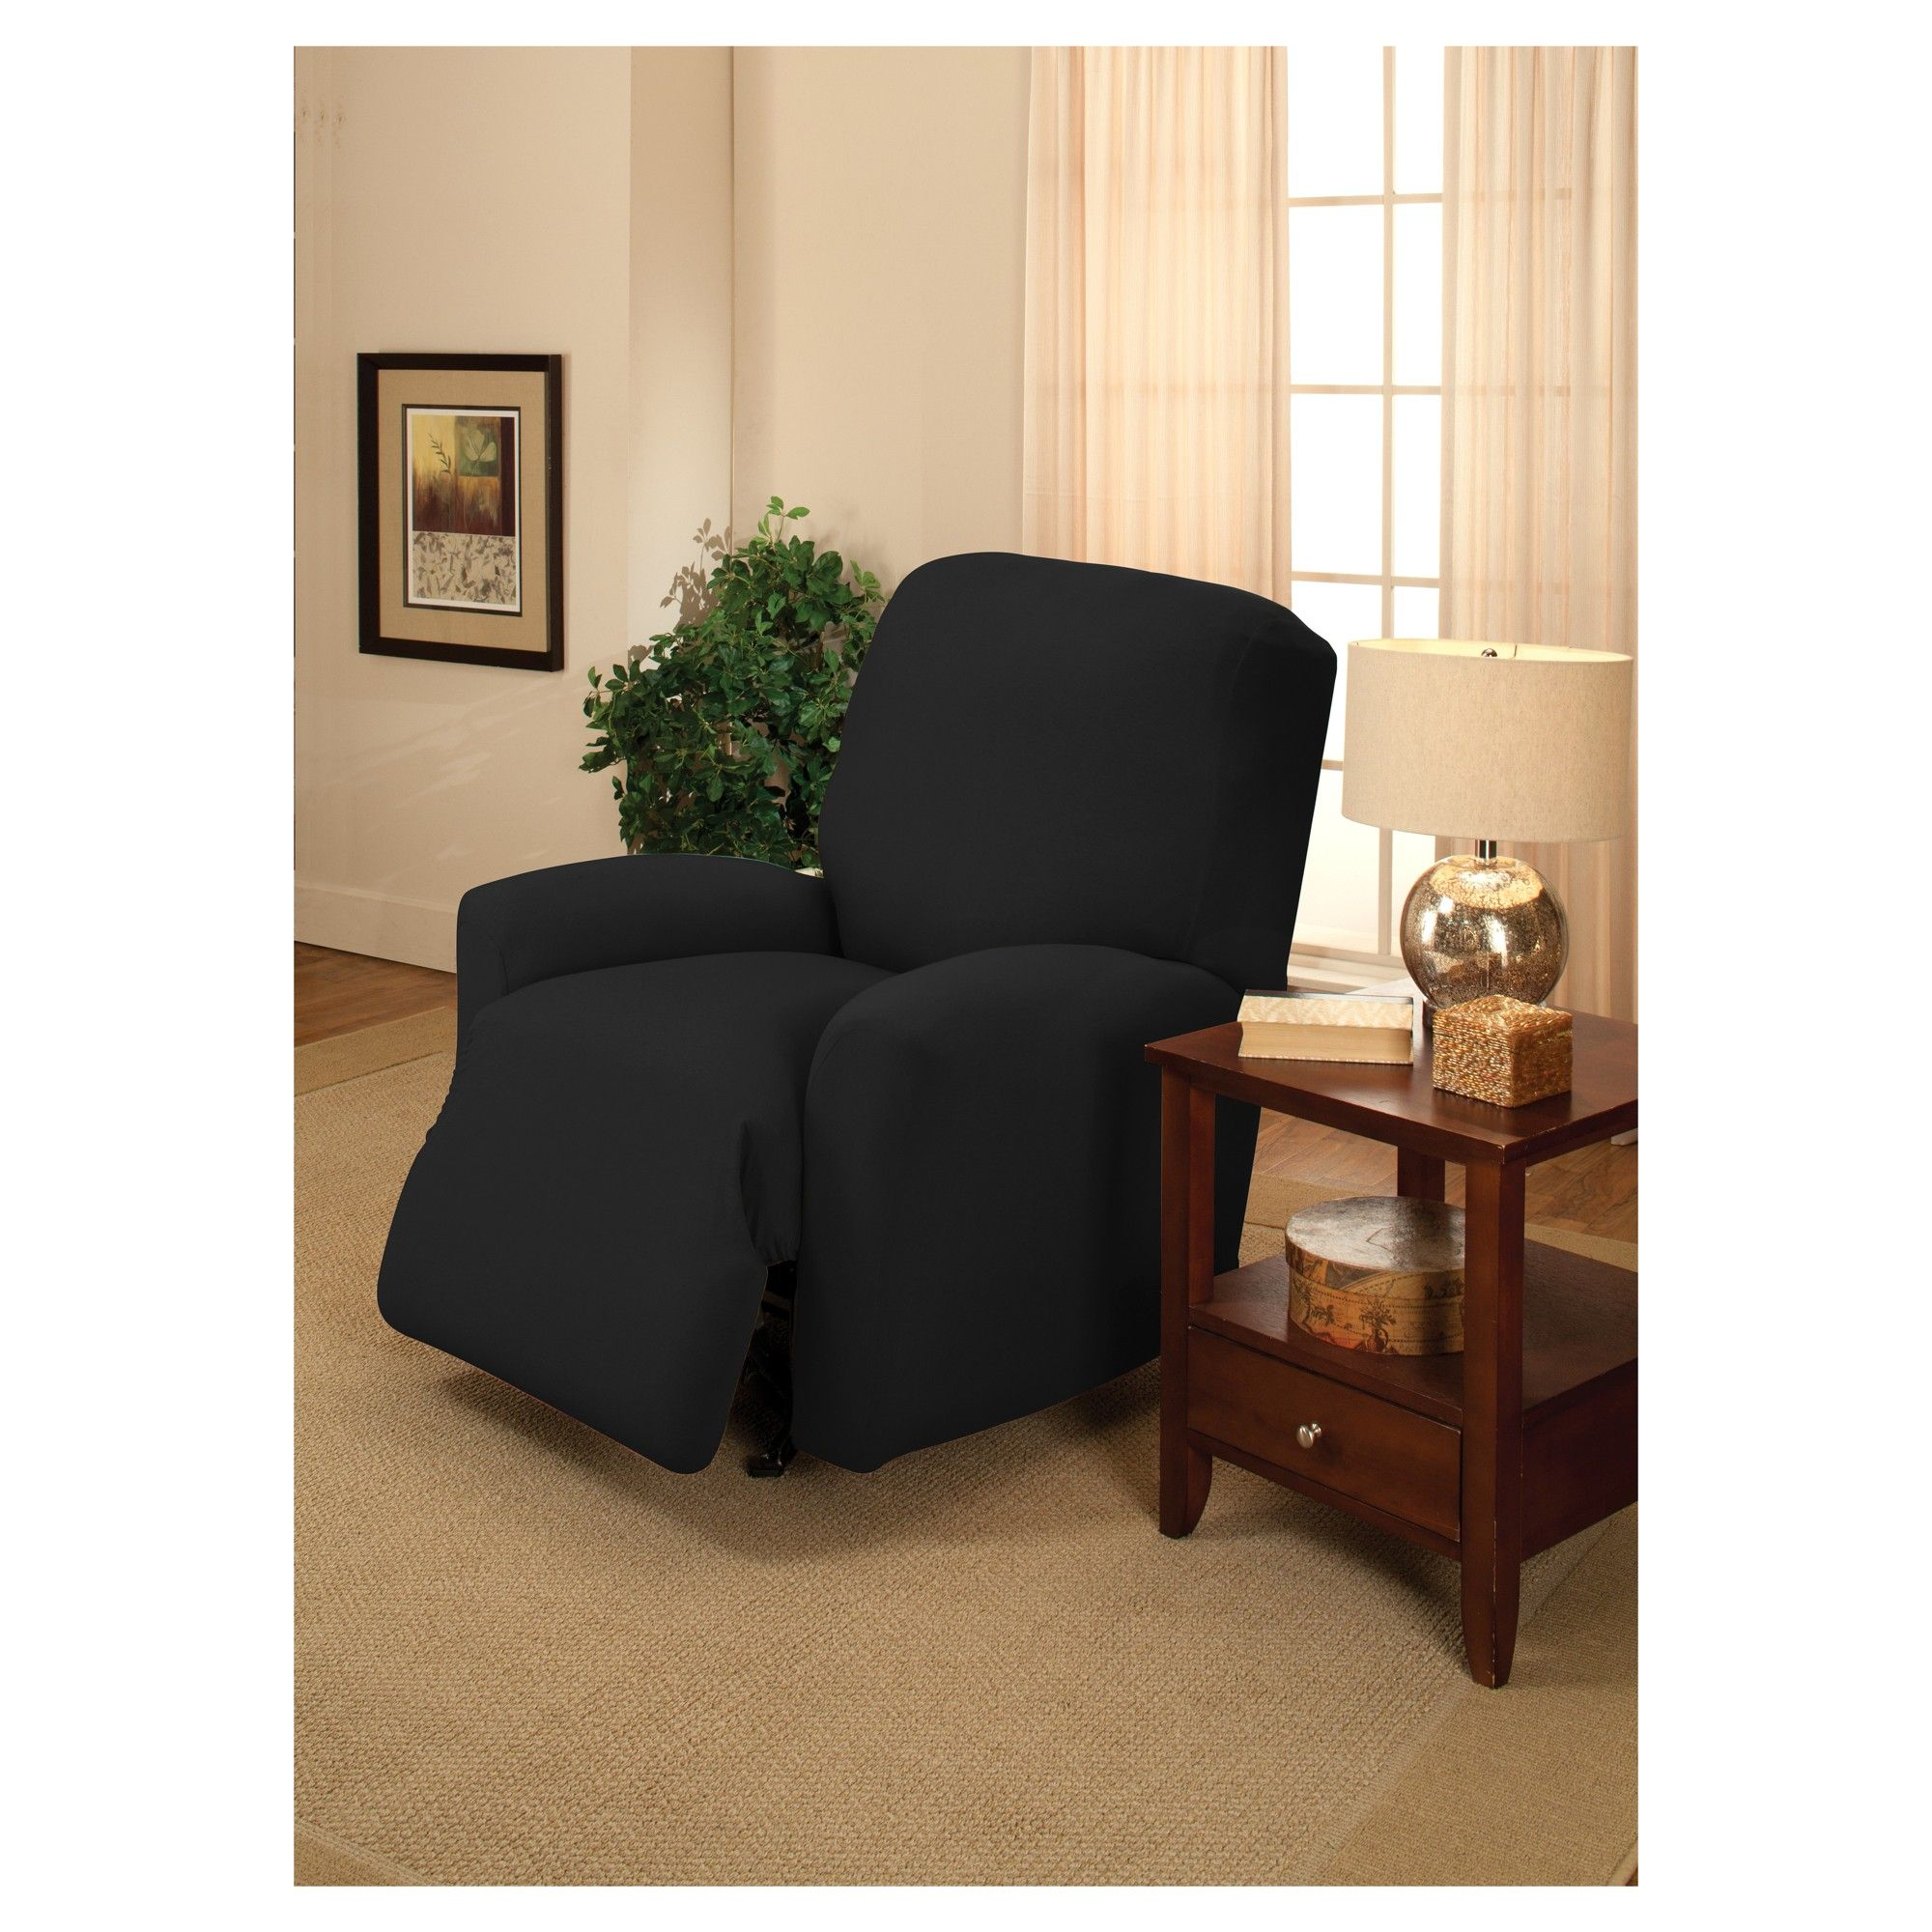 blue machine recliner sensations spandex jumbo for basketweave wash polyester pin slipcover recliners slipcovers stretch